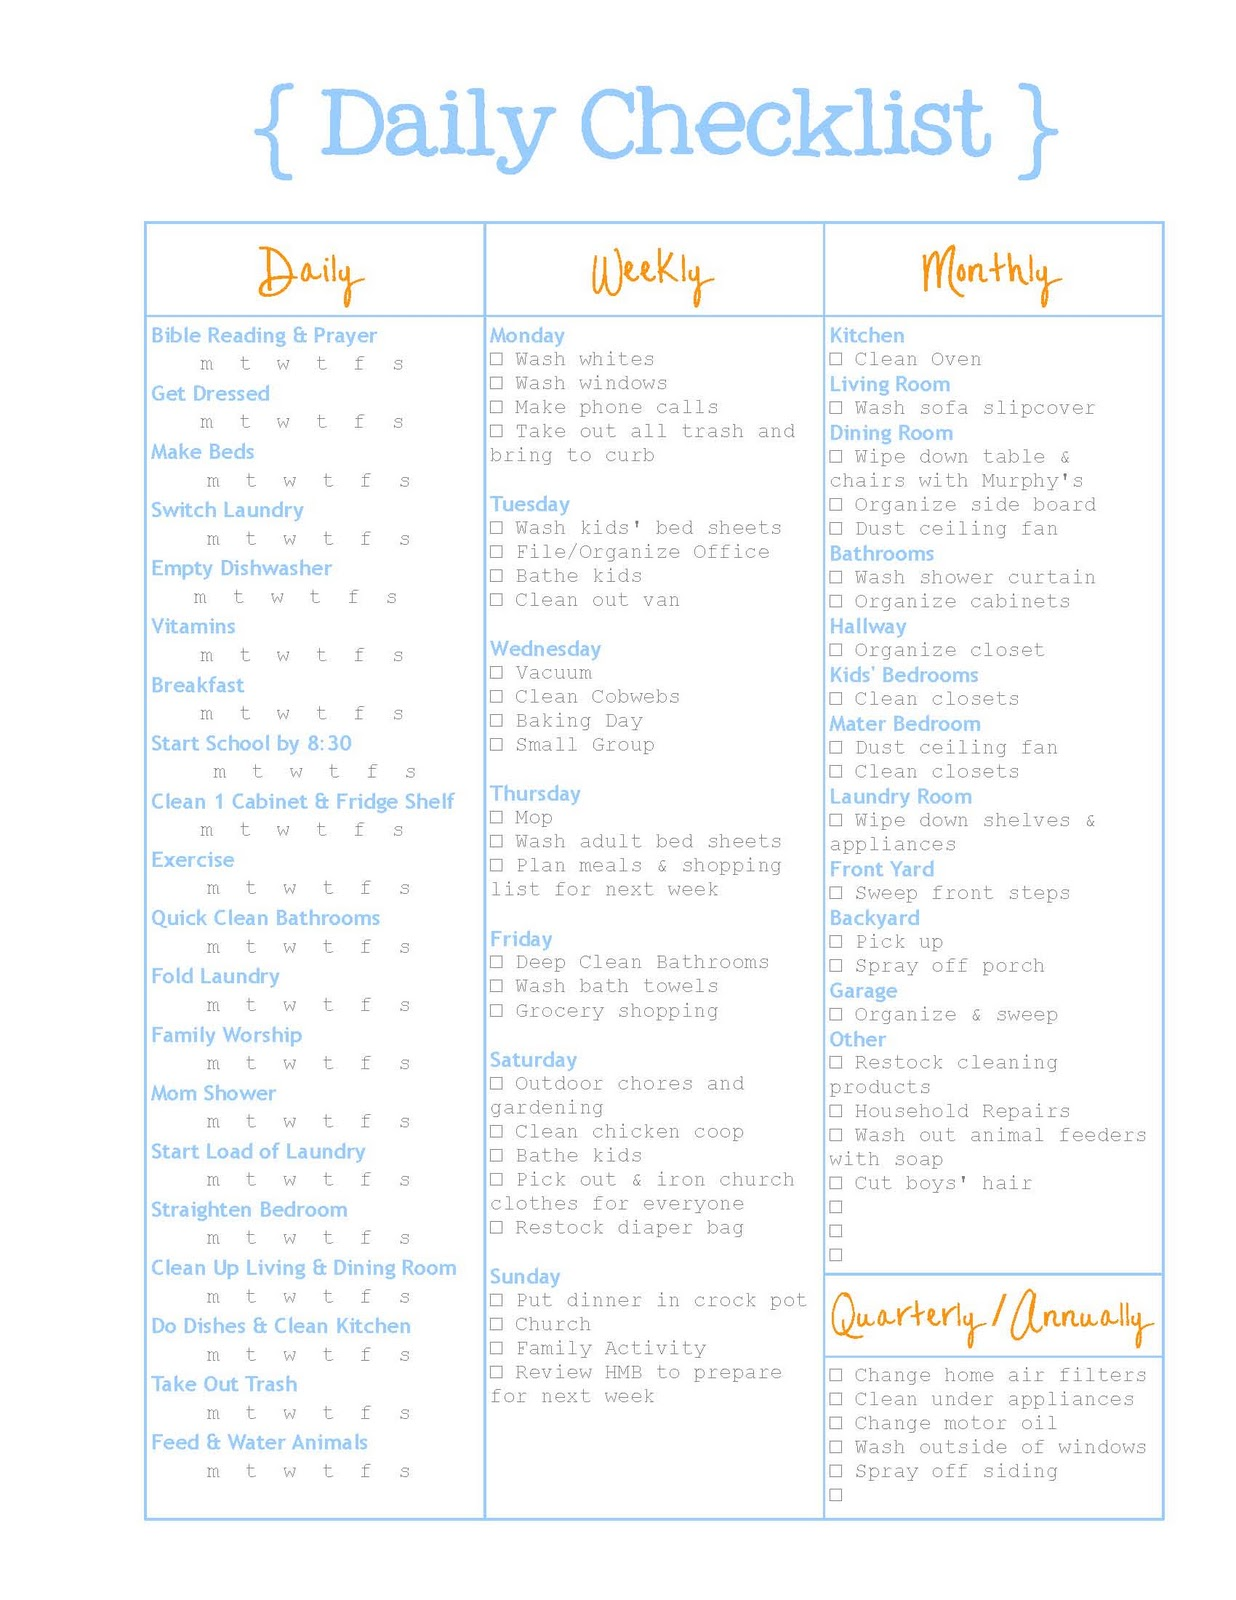 Daily Checklist Home Management Binder And Home